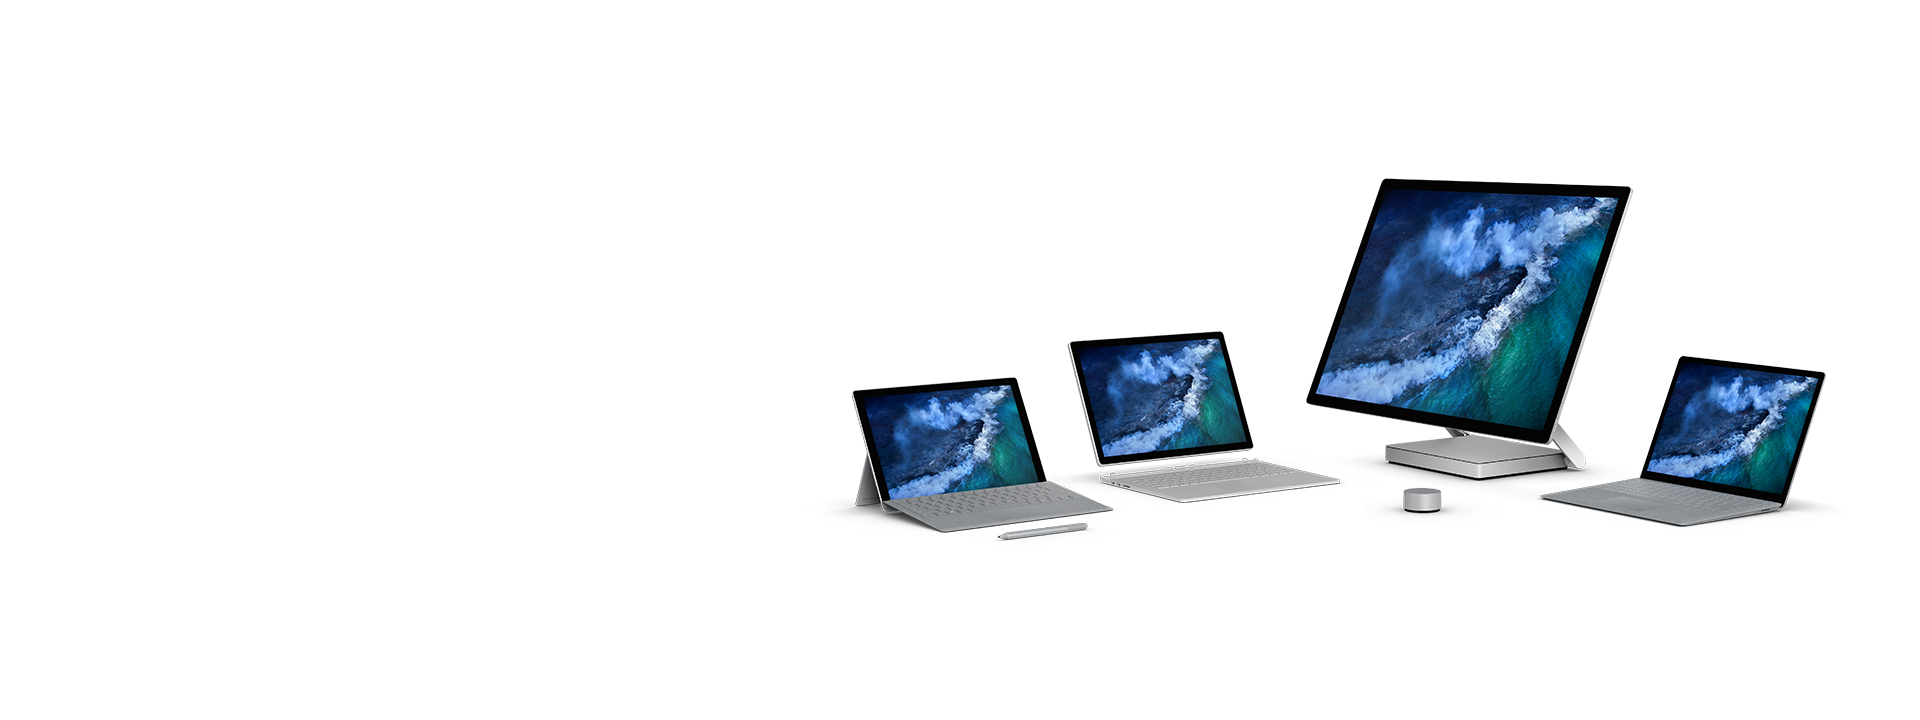 Die Surface-Familie: Surface Pro, Surface Laptop, Surface Book 2 und Surface Studio